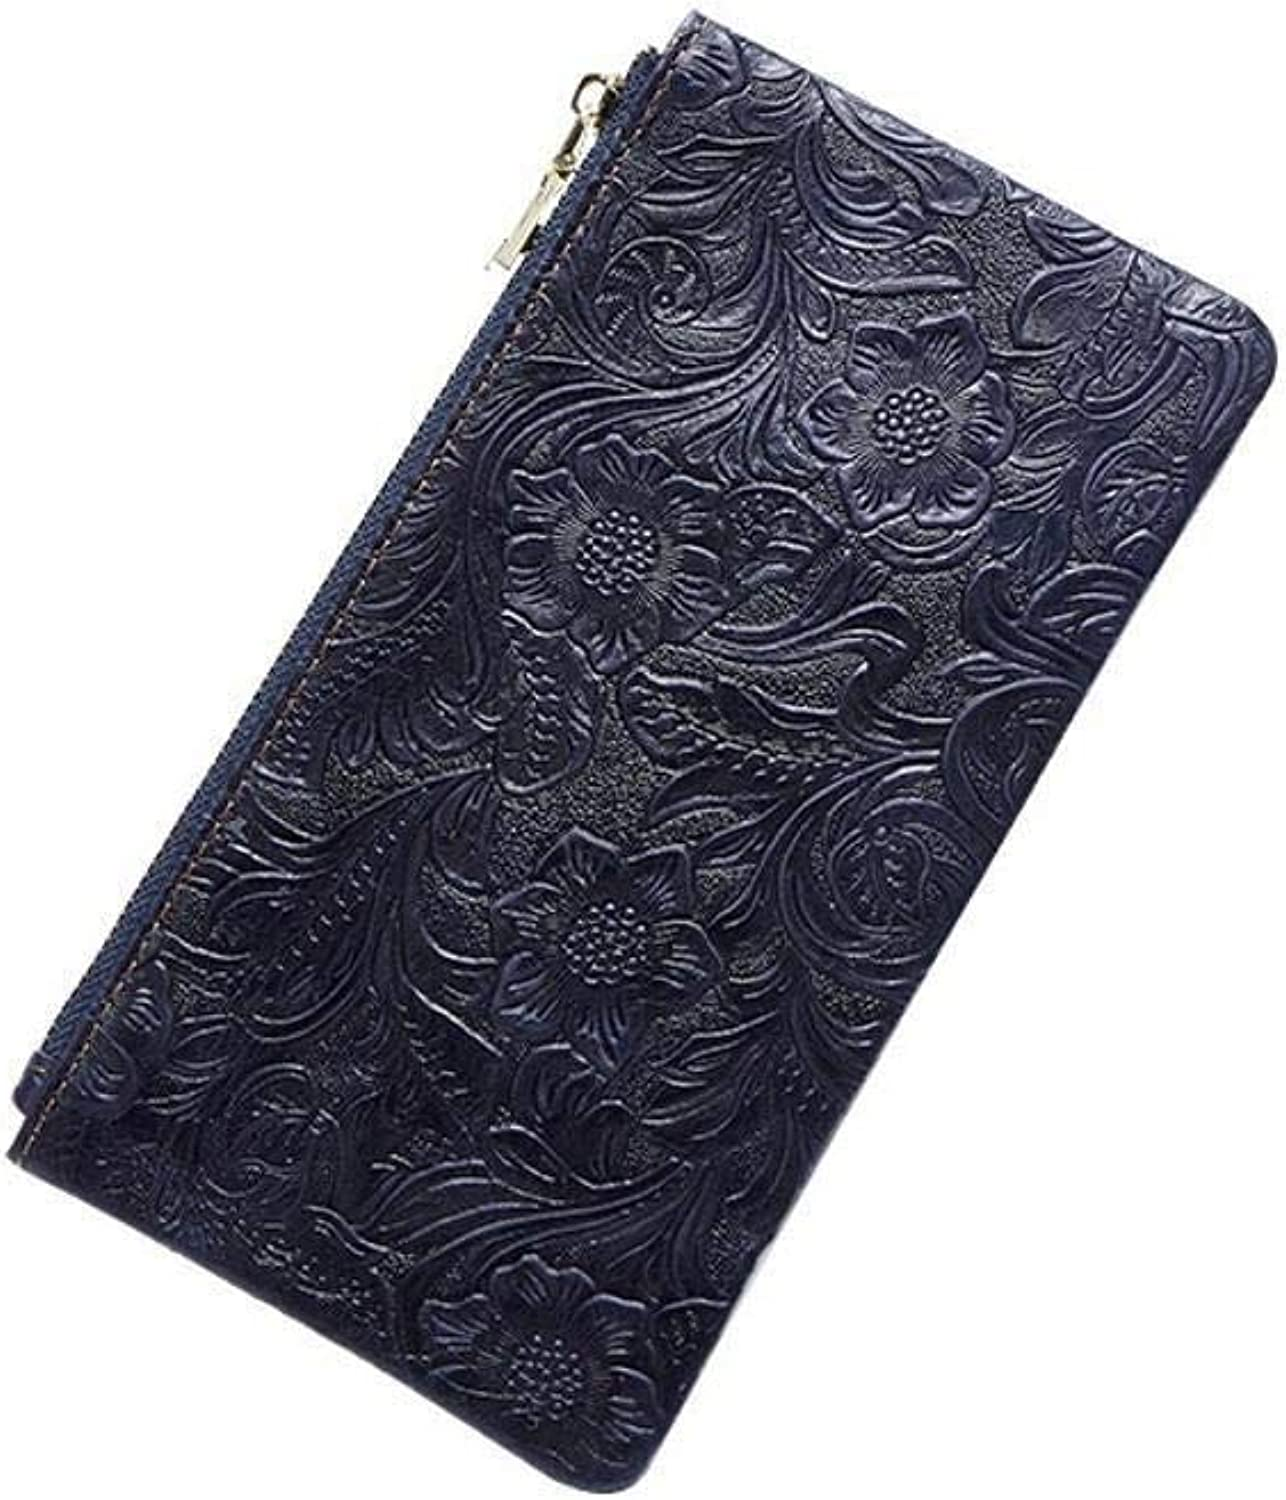 Girls Purse Women's Wallet,Female PU Purse Lady's Large Zip Around Wallet